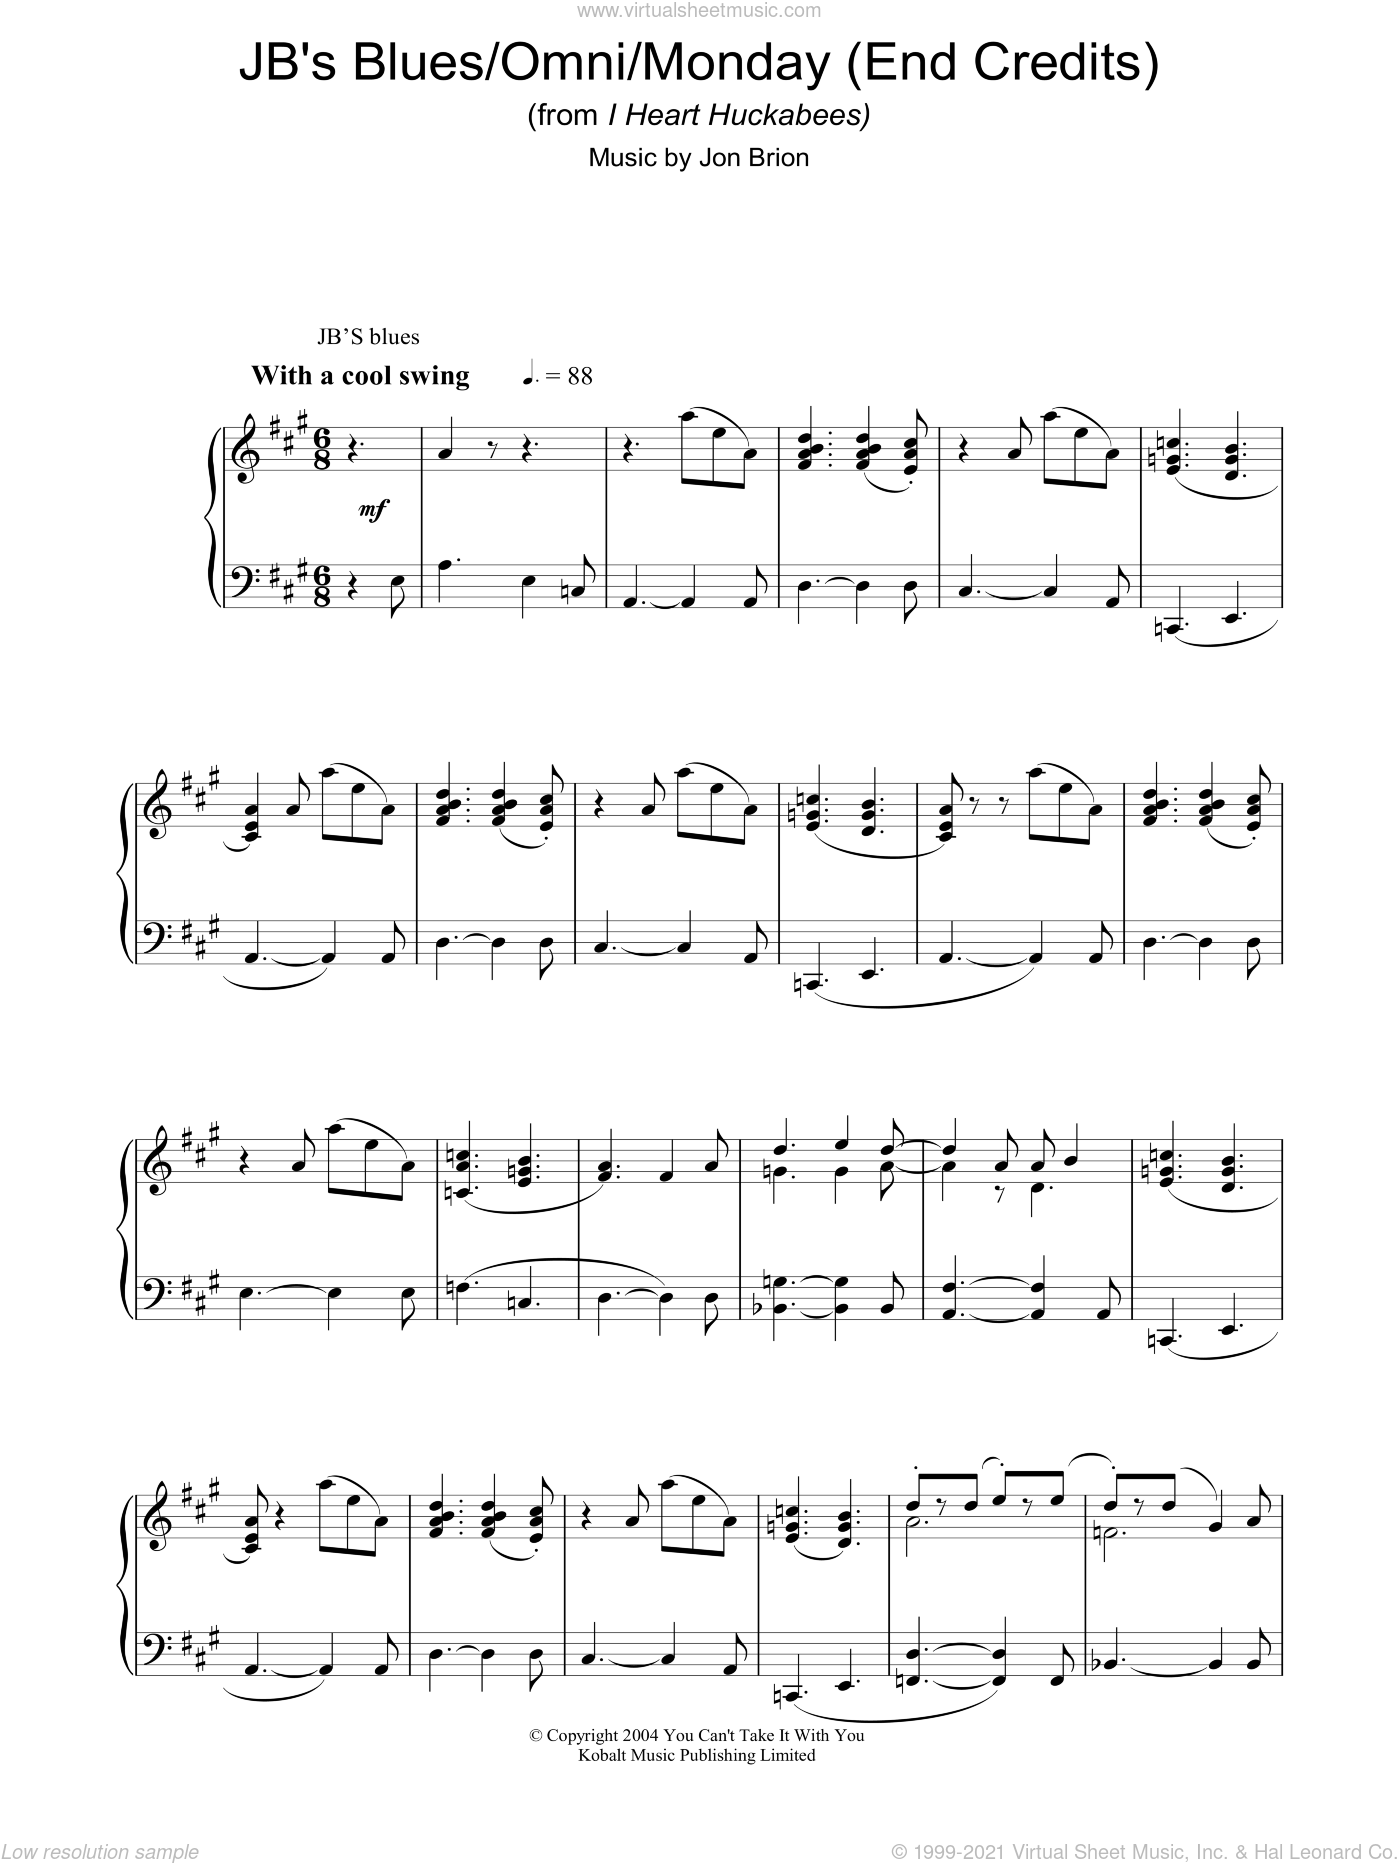 JB's Blues/Omni/Monday (End Credits) (from I Heart Huckabees) sheet music for piano solo by Jon Brion. Score Image Preview.